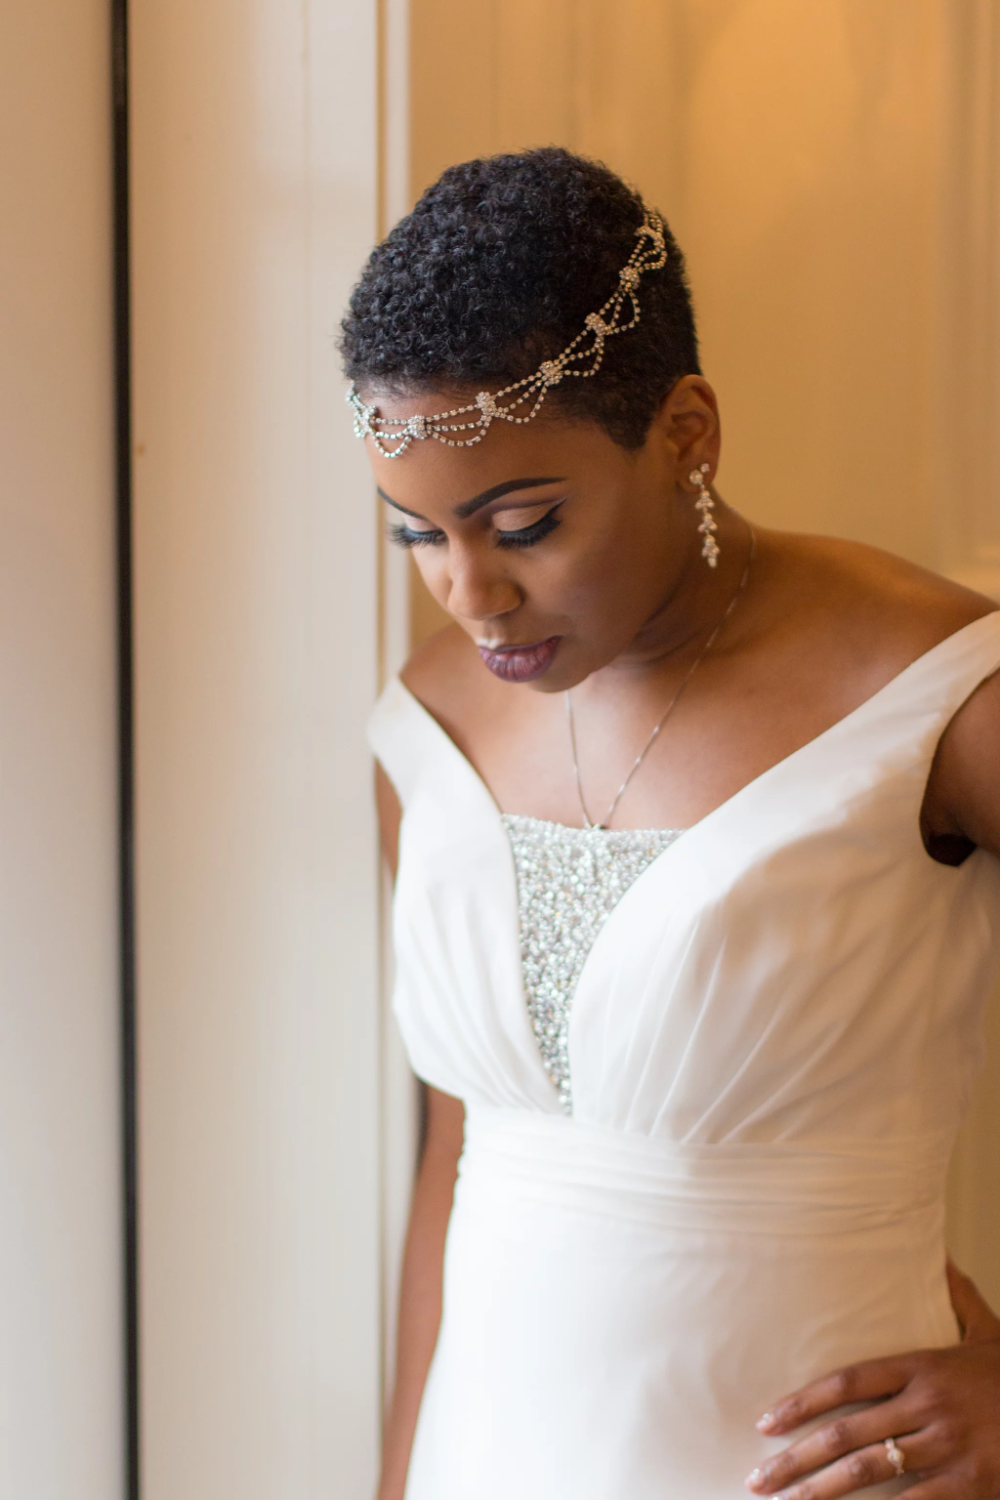 Natural And Short With Dainty Headpiece Short Wedding Hair Natural Hair Wedding Natural Hair Bride [ 1500 x 1000 Pixel ]